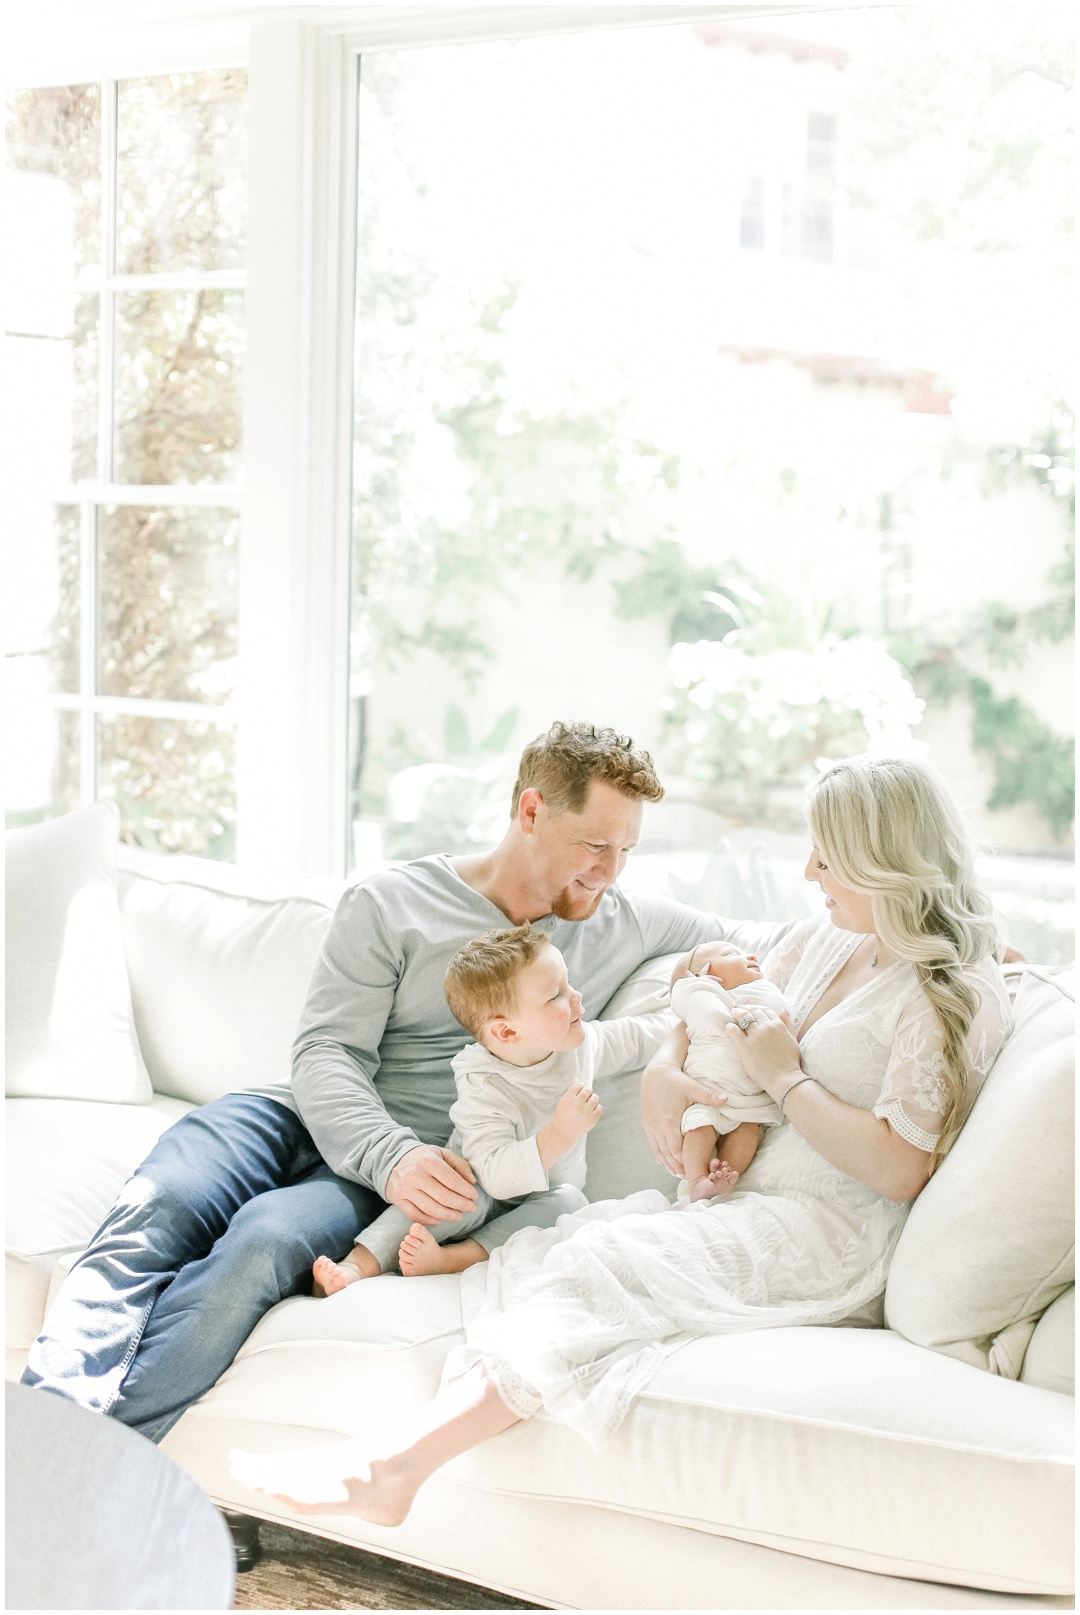 Newport_Beach_Newborn_Light_Airy_Natural_Photographer_Newport_Beach_Photographer_Orange_County_Family_Photographer_Cori_Kleckner_Photography_Newport_Beach_Photographer_newborn_kole_calhoun56_kole_calhoun_Jennifer_Calhoun_Knox_Calhoun_3800.jpg